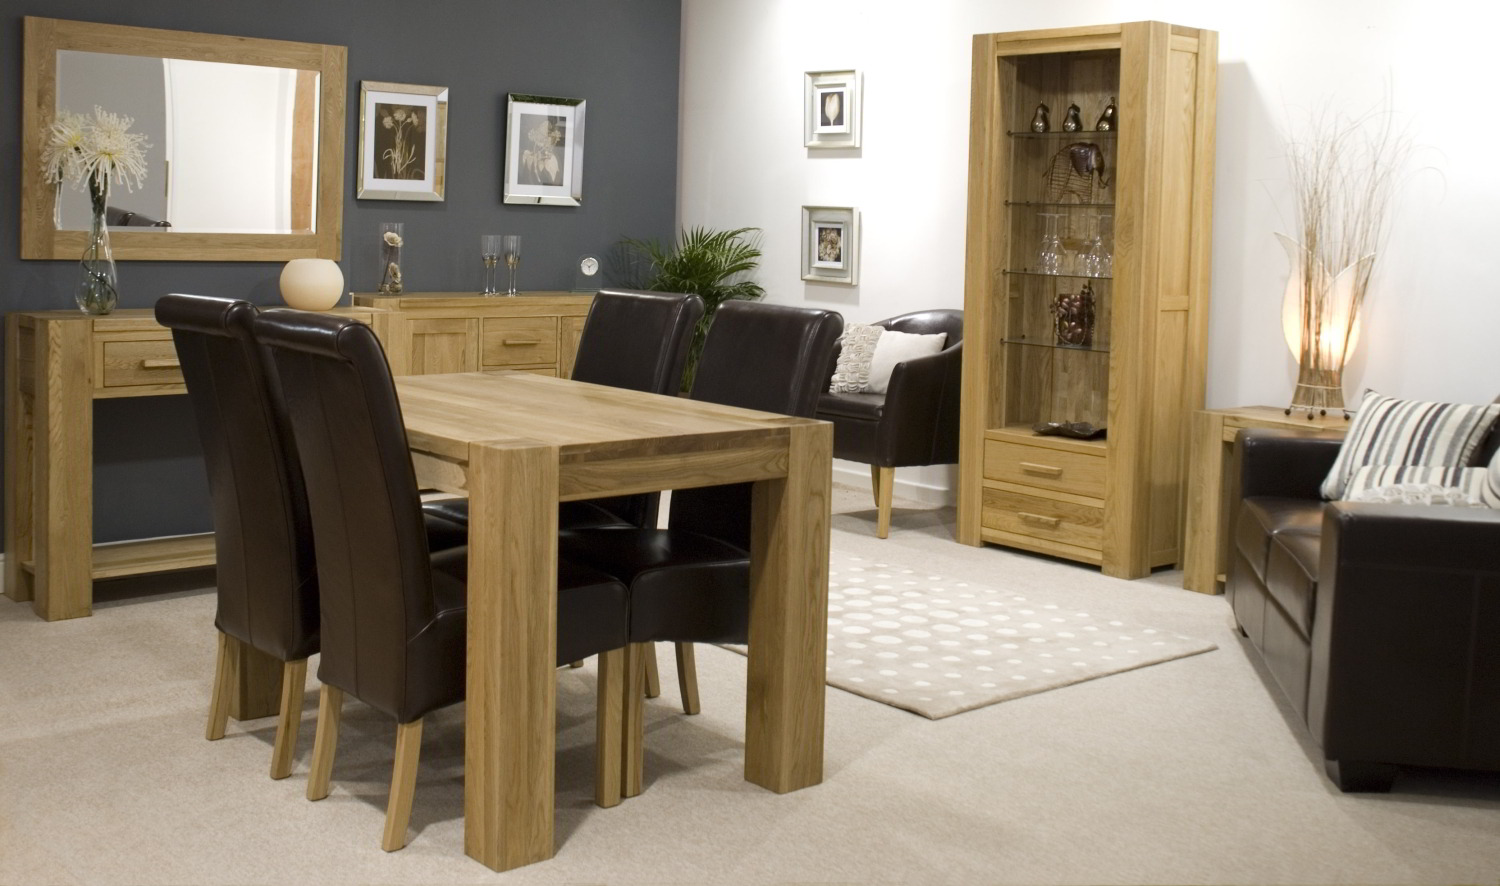 Matching Living Room And Dining Room Furniture Pemberton Solid Oak Dining Room Furniture Large Chunky Dining